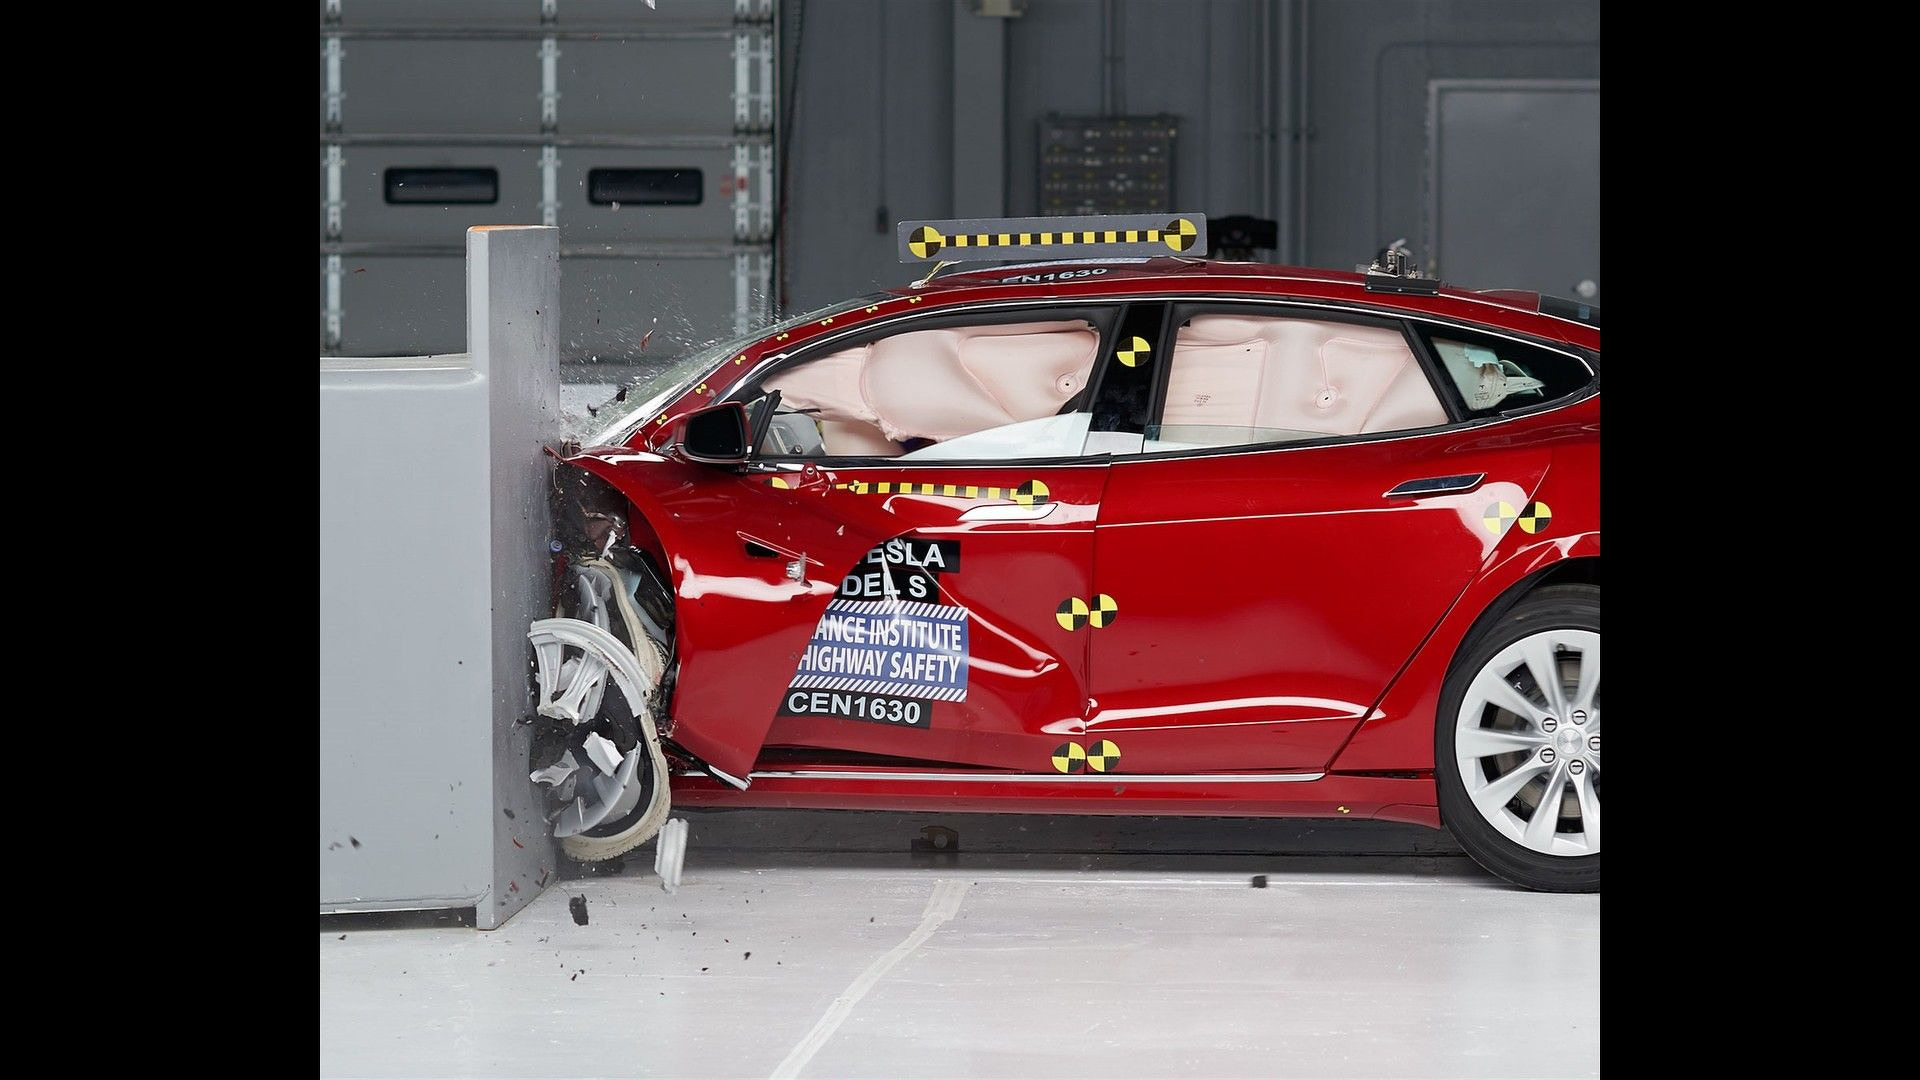 tesla-model-s-crash-test (1)